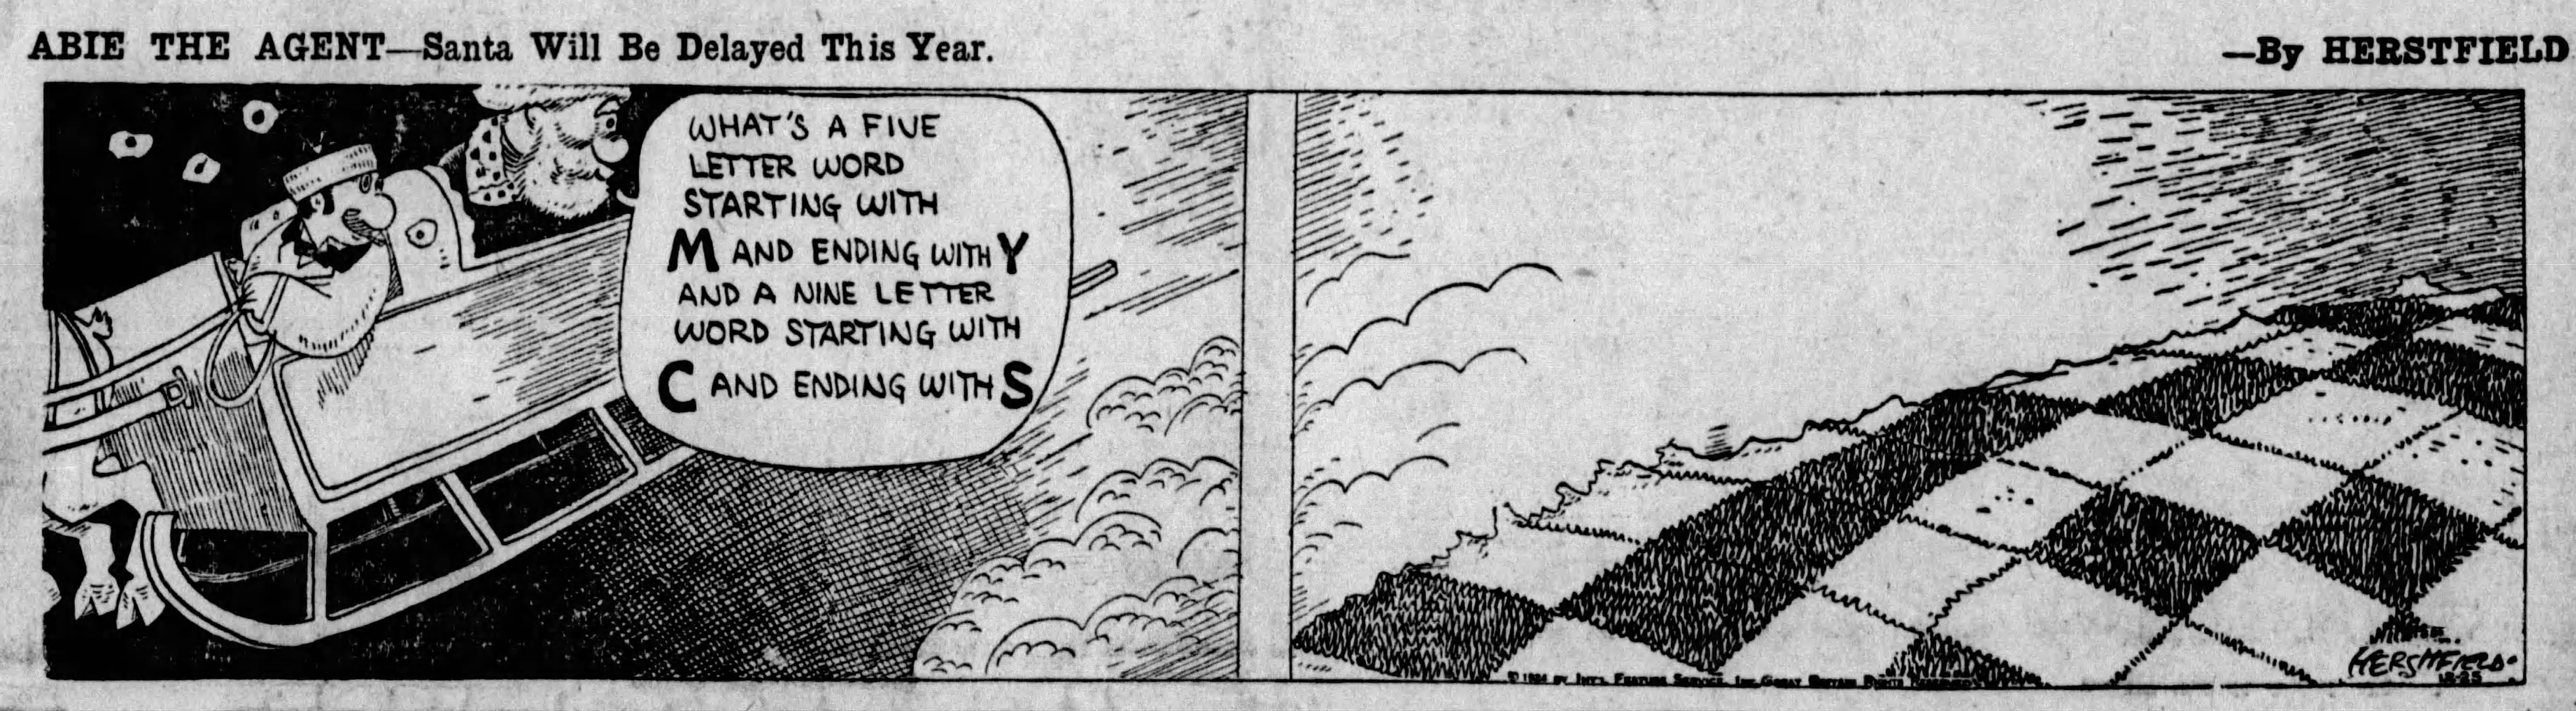 Abie the Agent, December 25, 1924